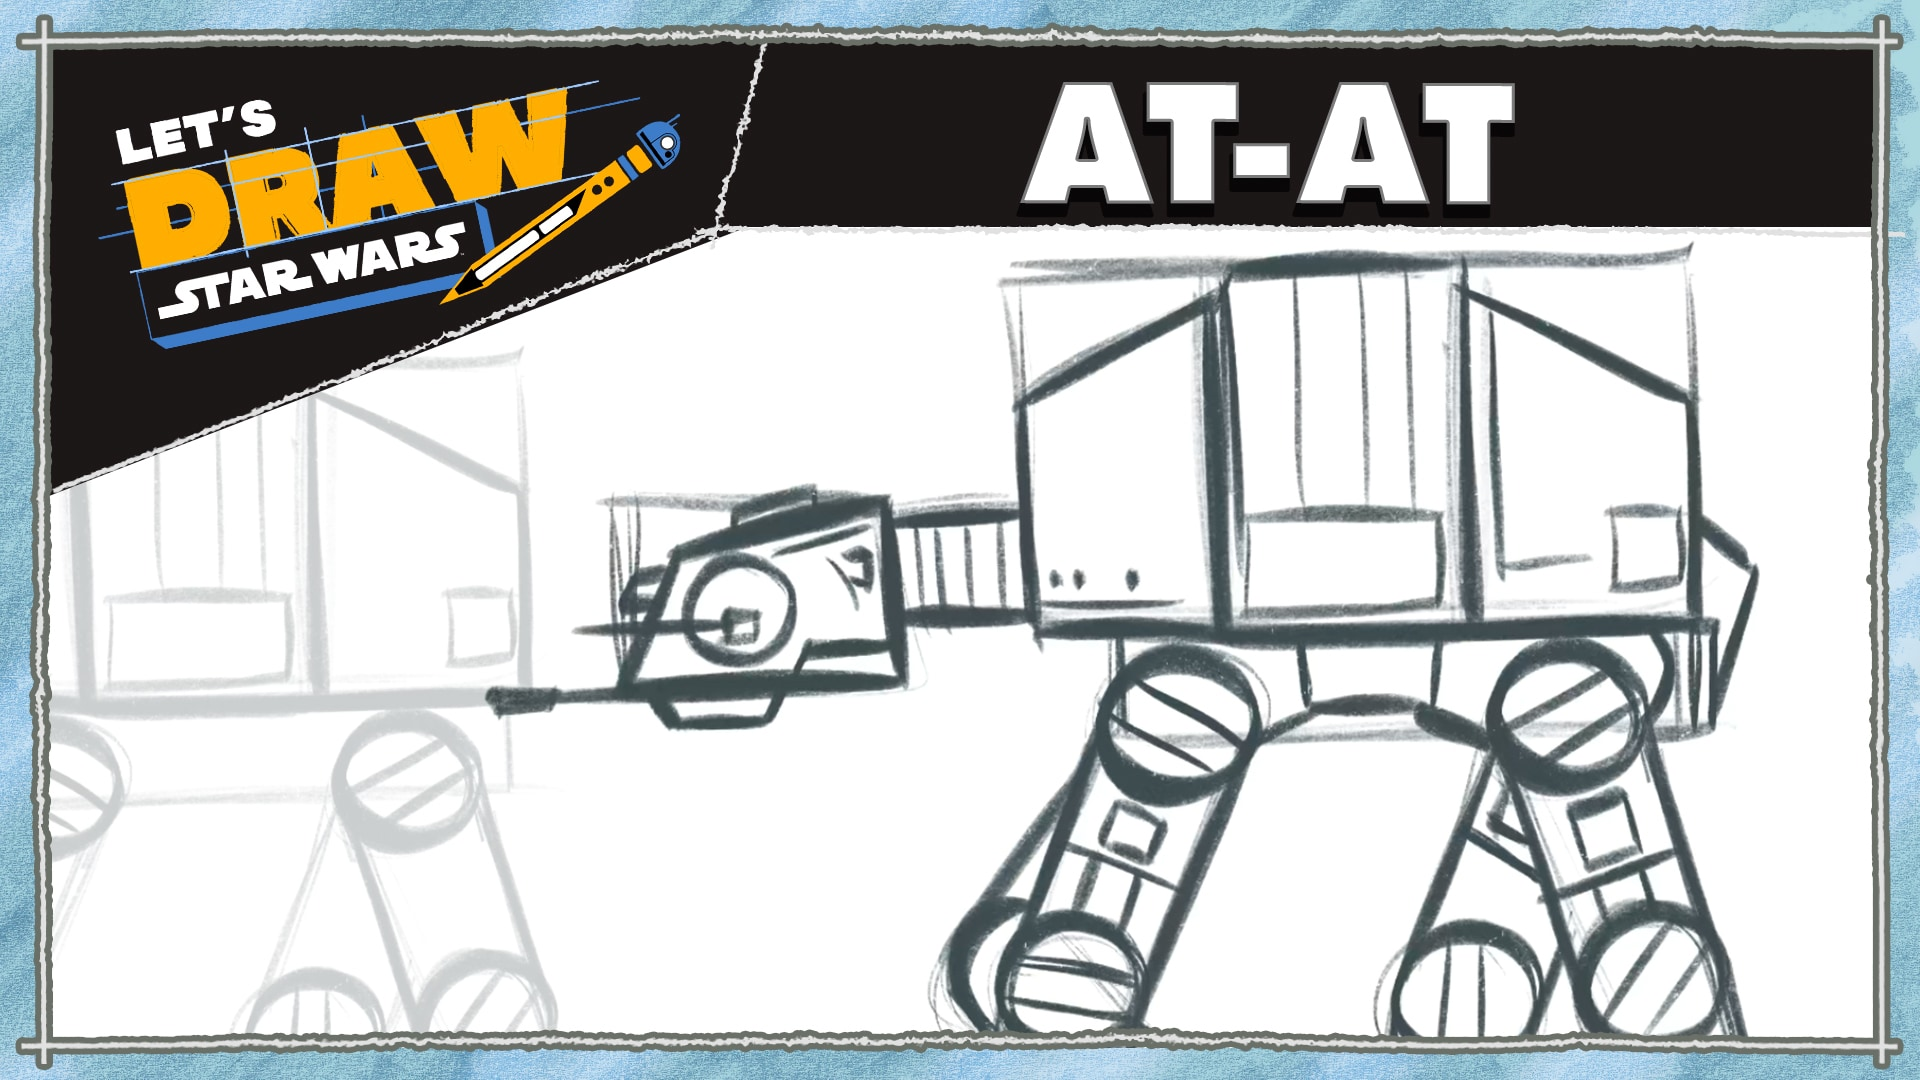 How to Draw an AT-AT | Let's Draw Star Wars